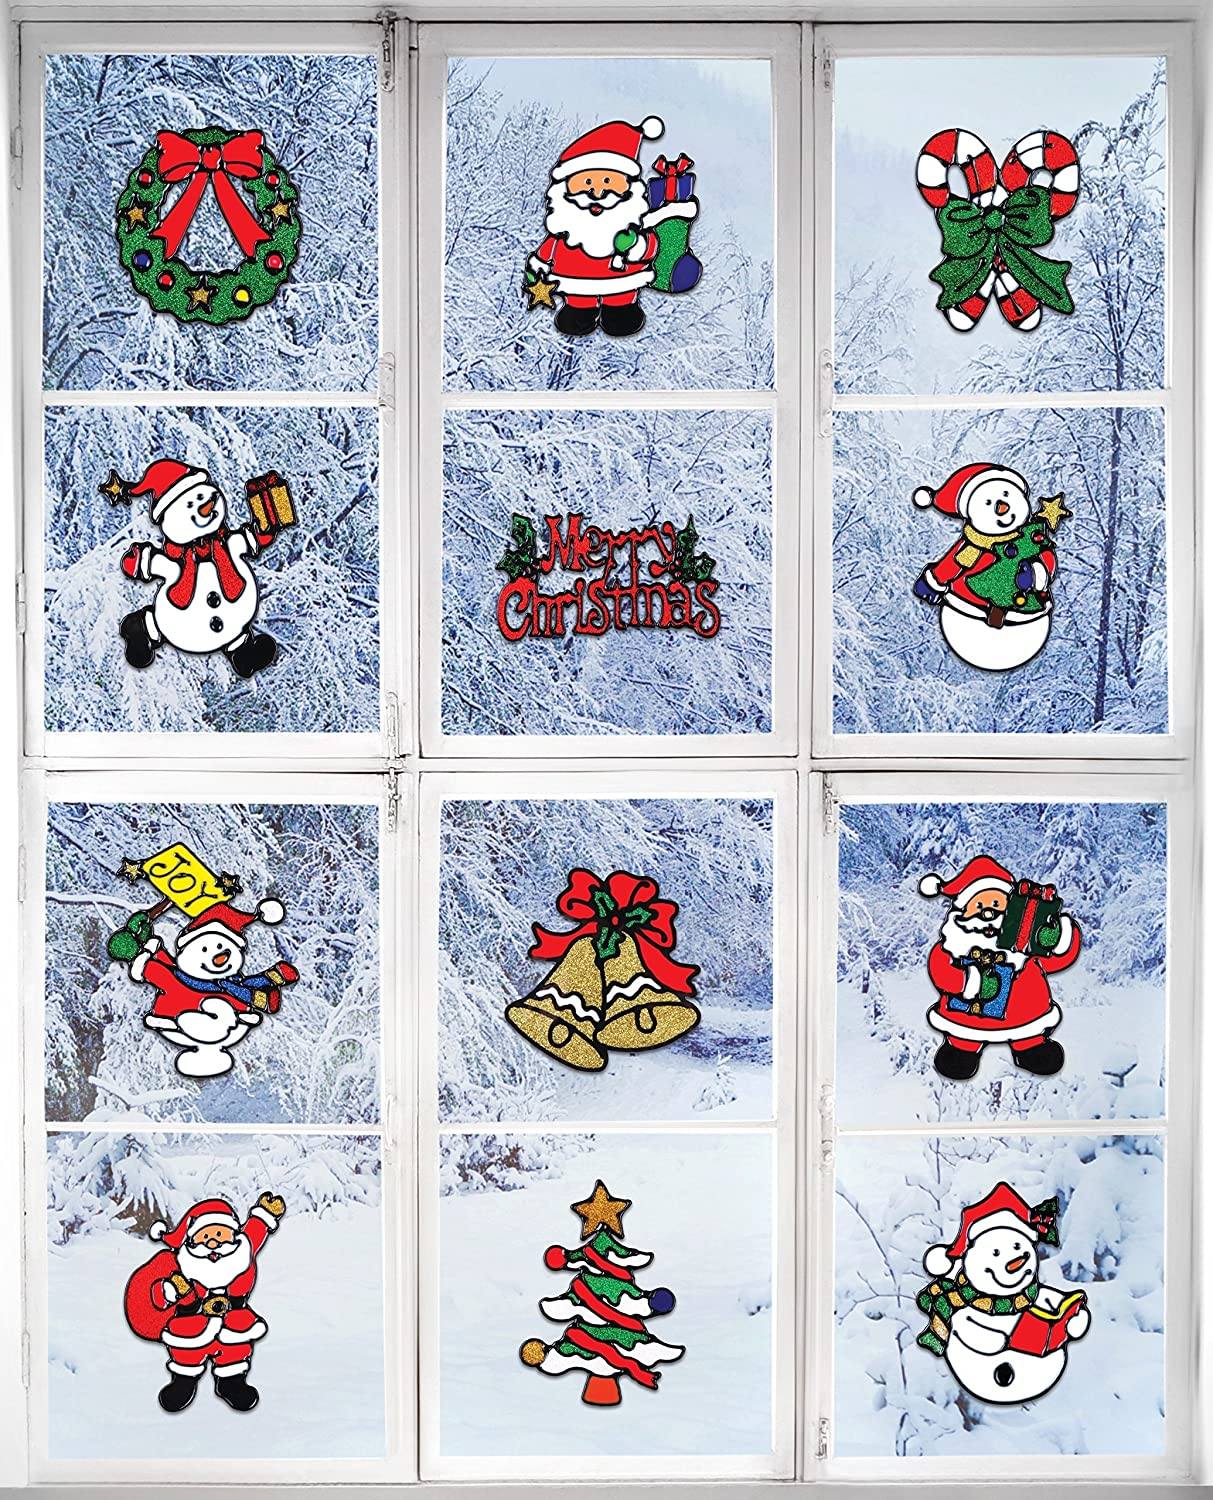 """Santa Claus Snowman /& Many More Giraffe Christmas Decorations /â/€/"""" Holiday Window Sticker Clings 12 Pack"""